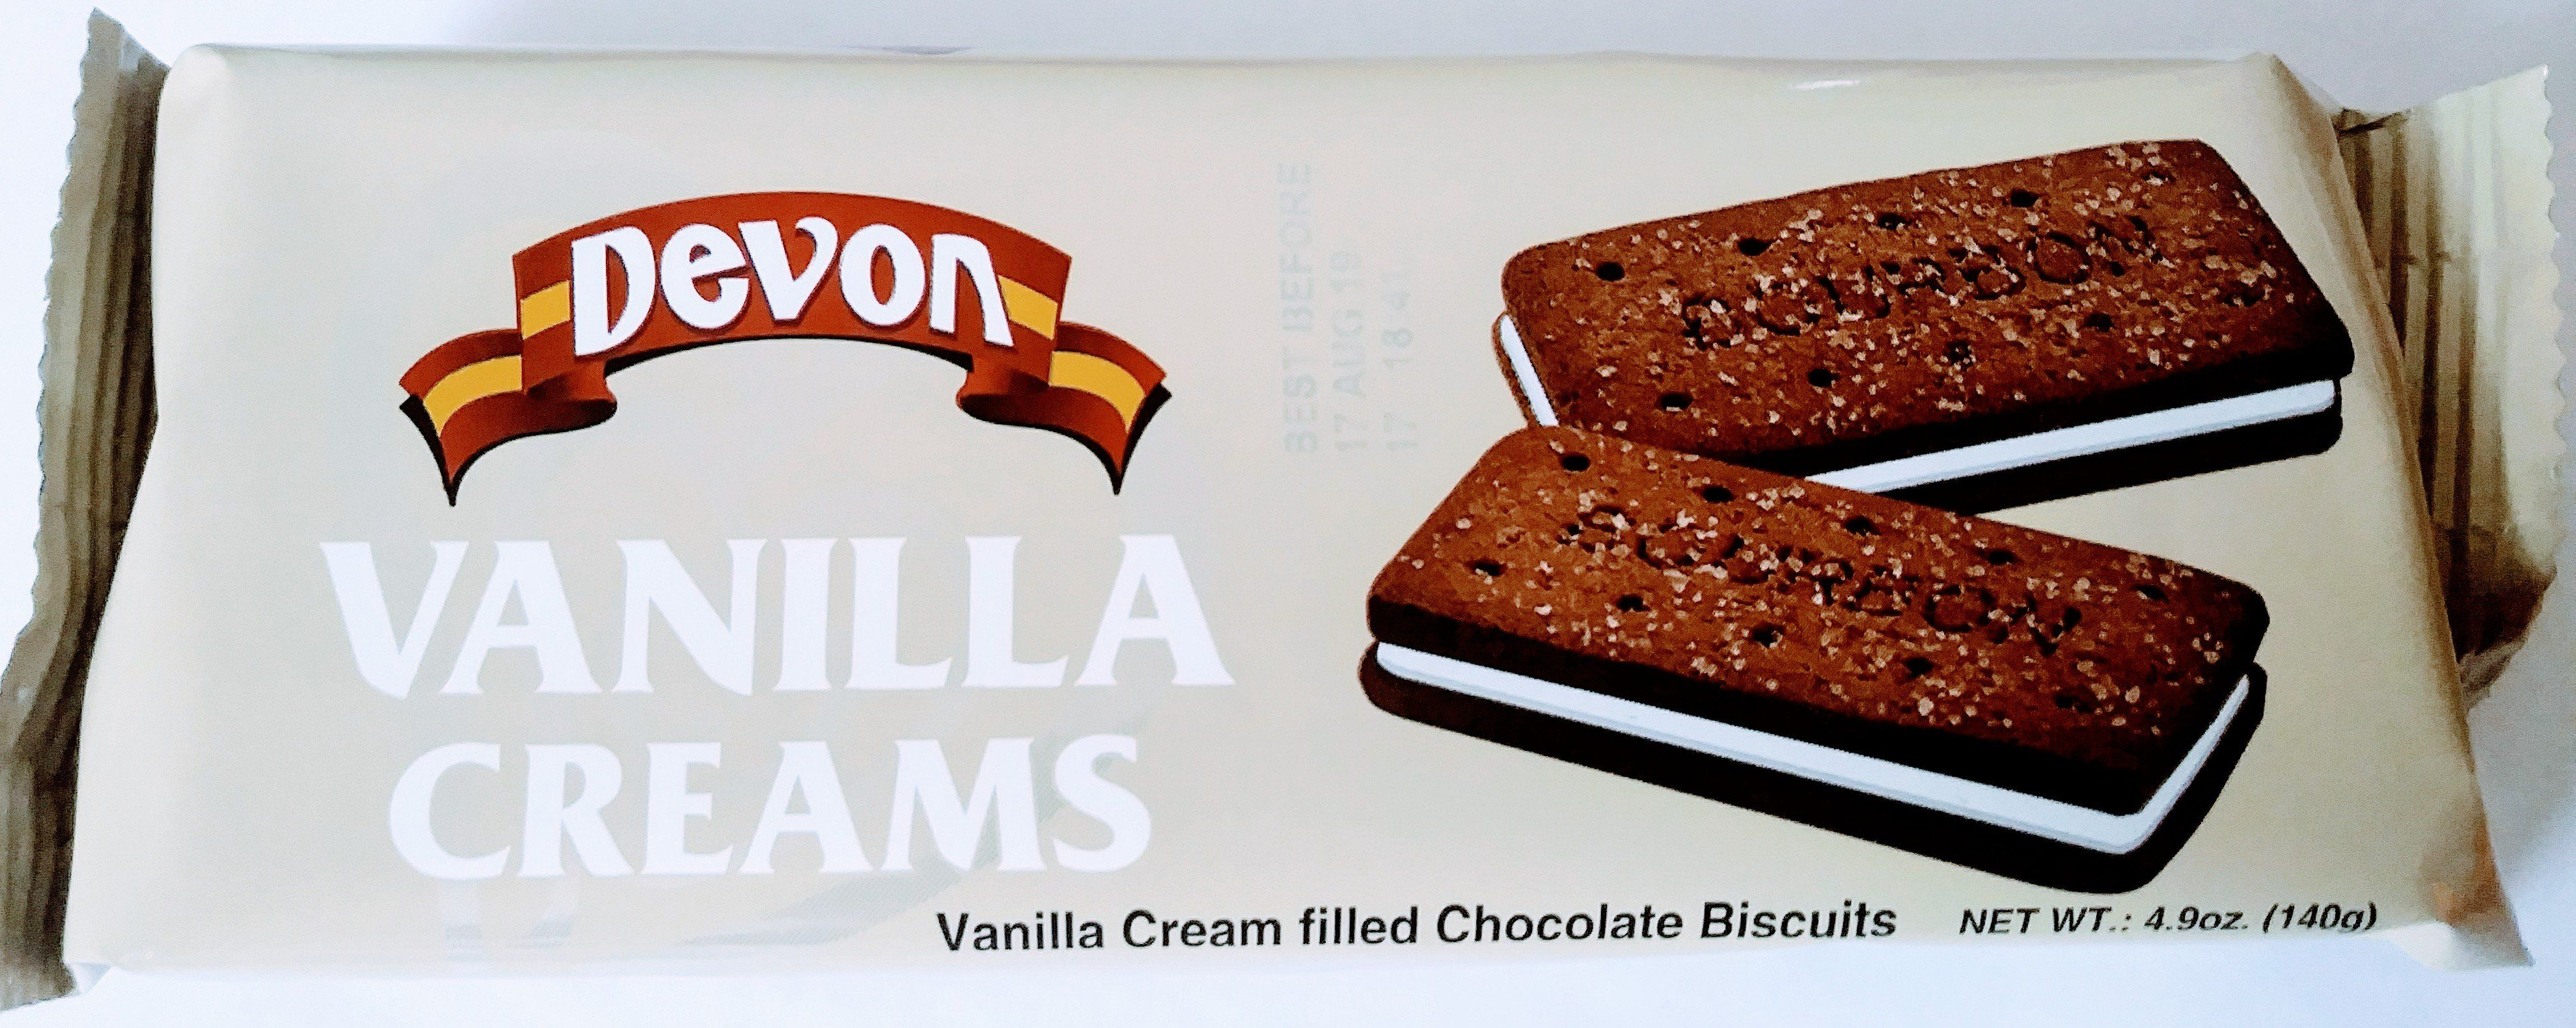 Photo of Devon Vanilla Creams